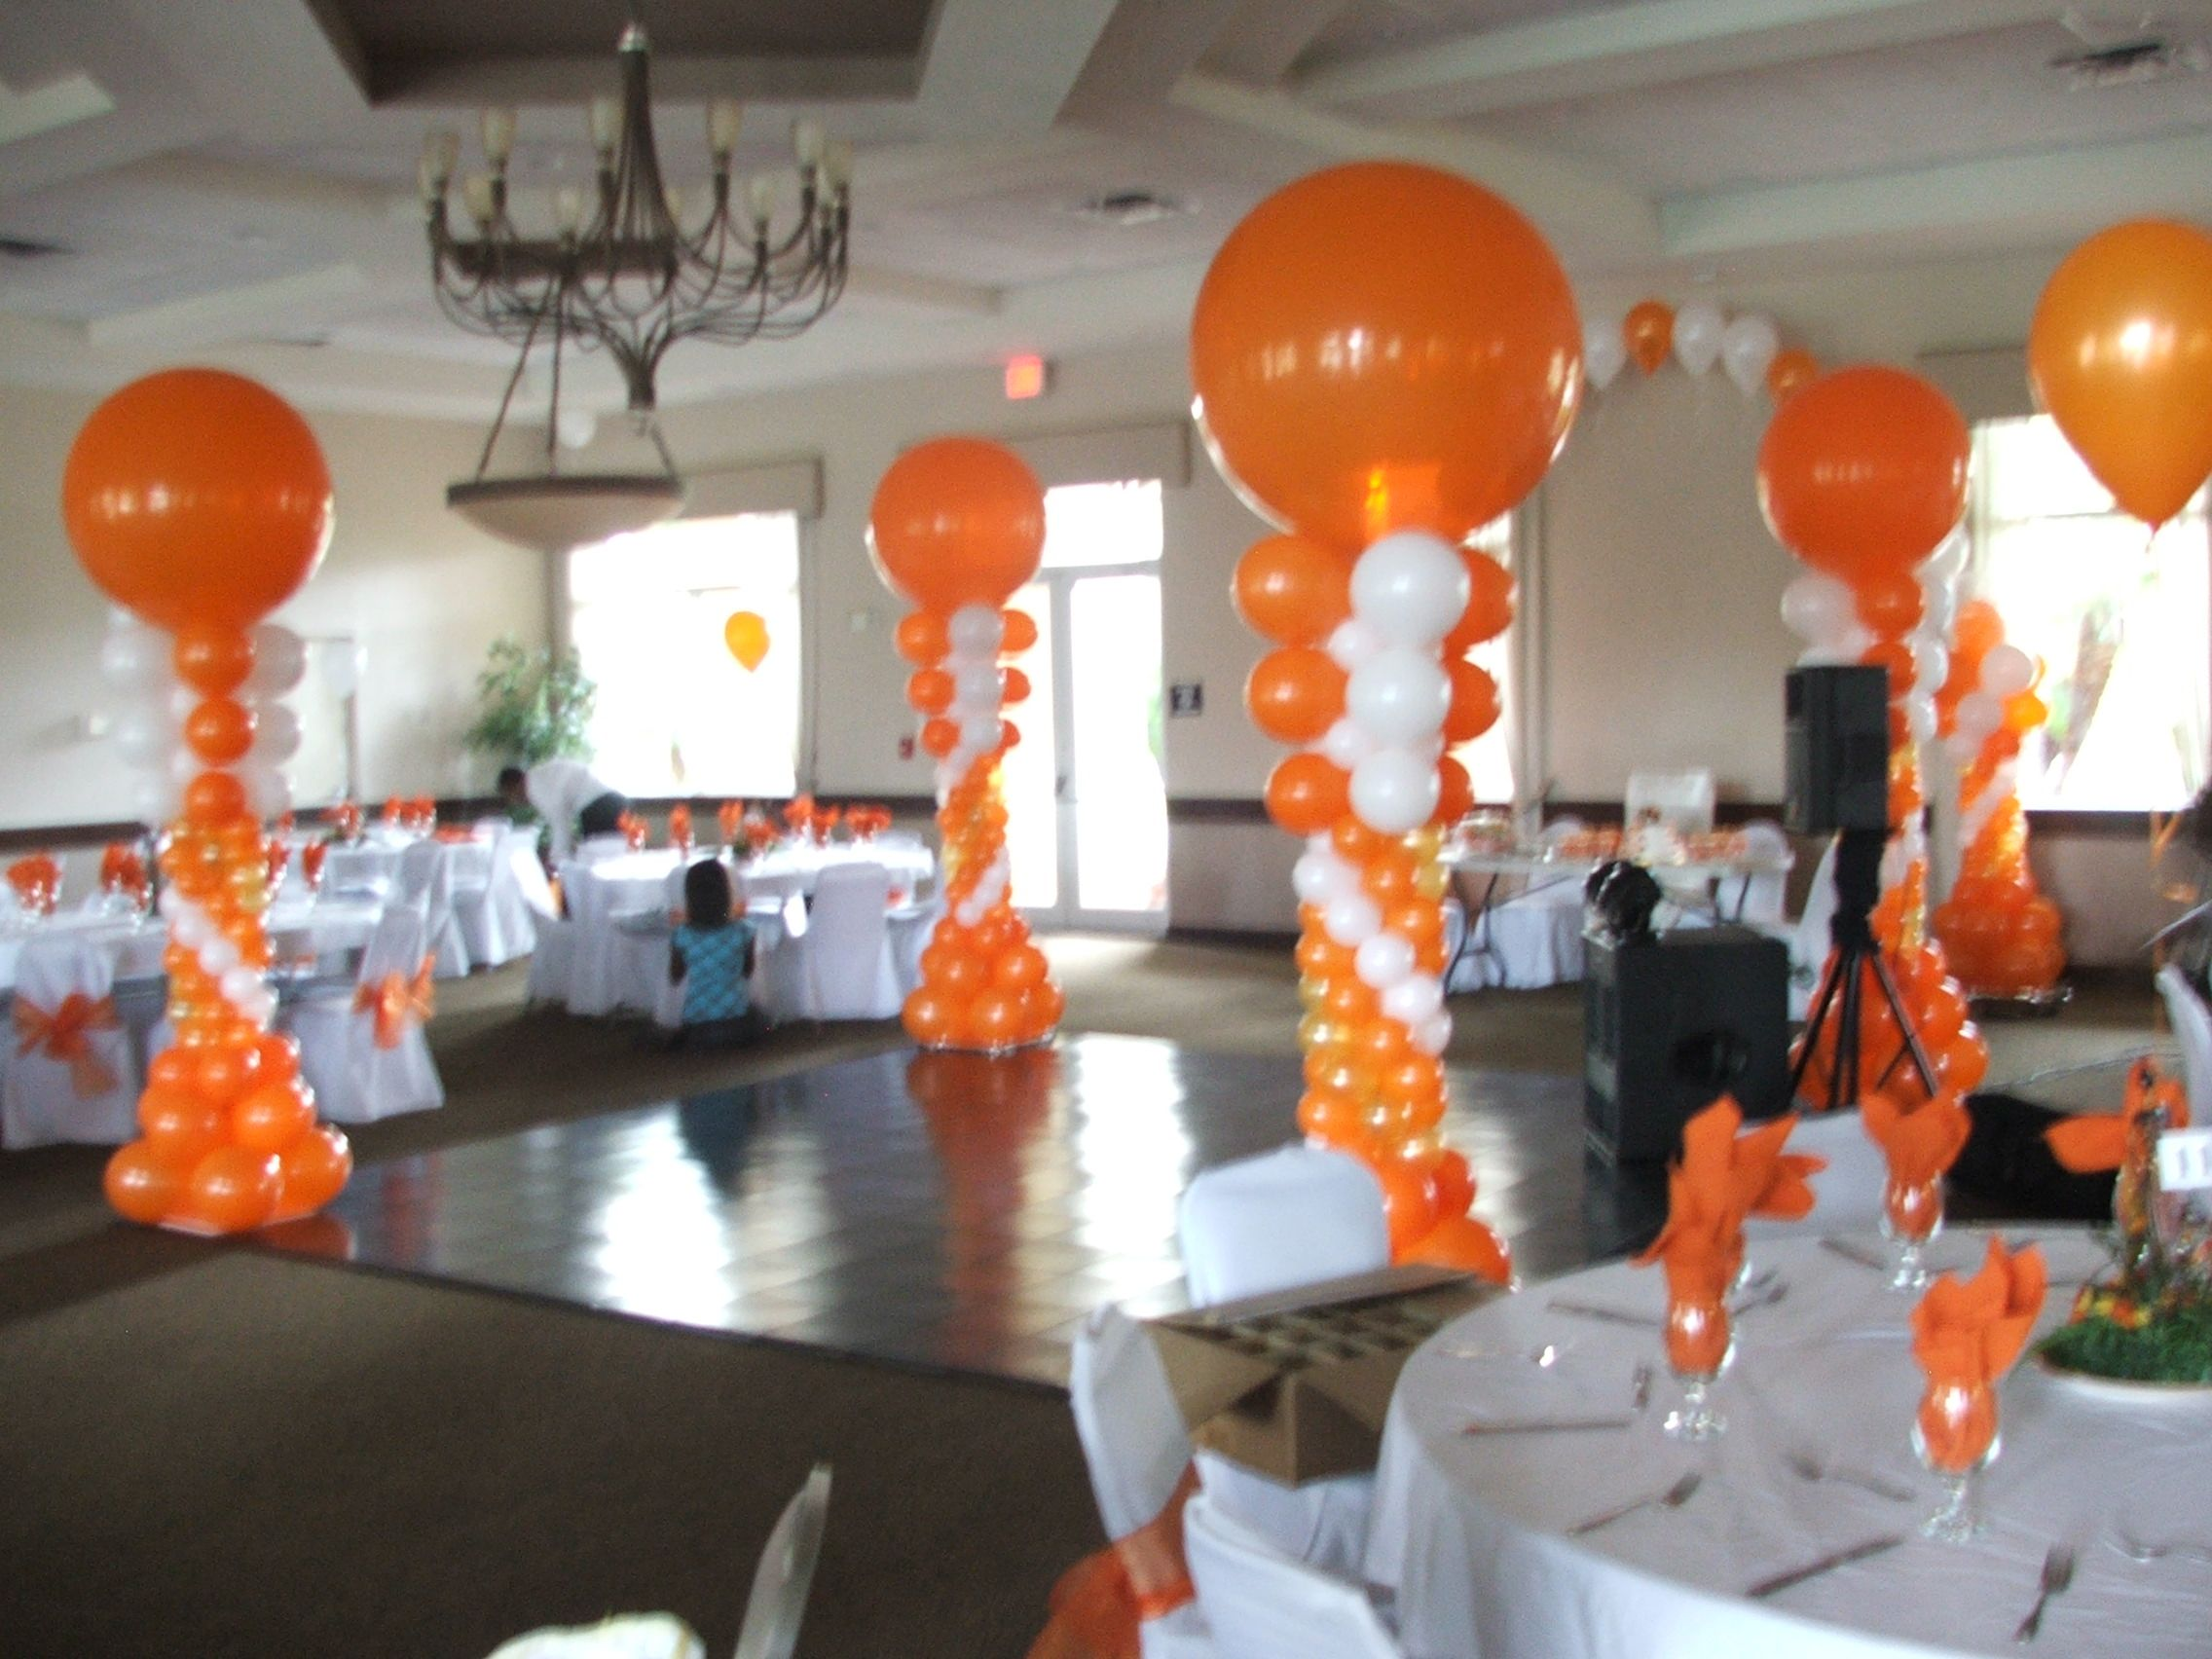 Dance floor balloon column balloon arch for dance floor for Balloon dance floor decoration